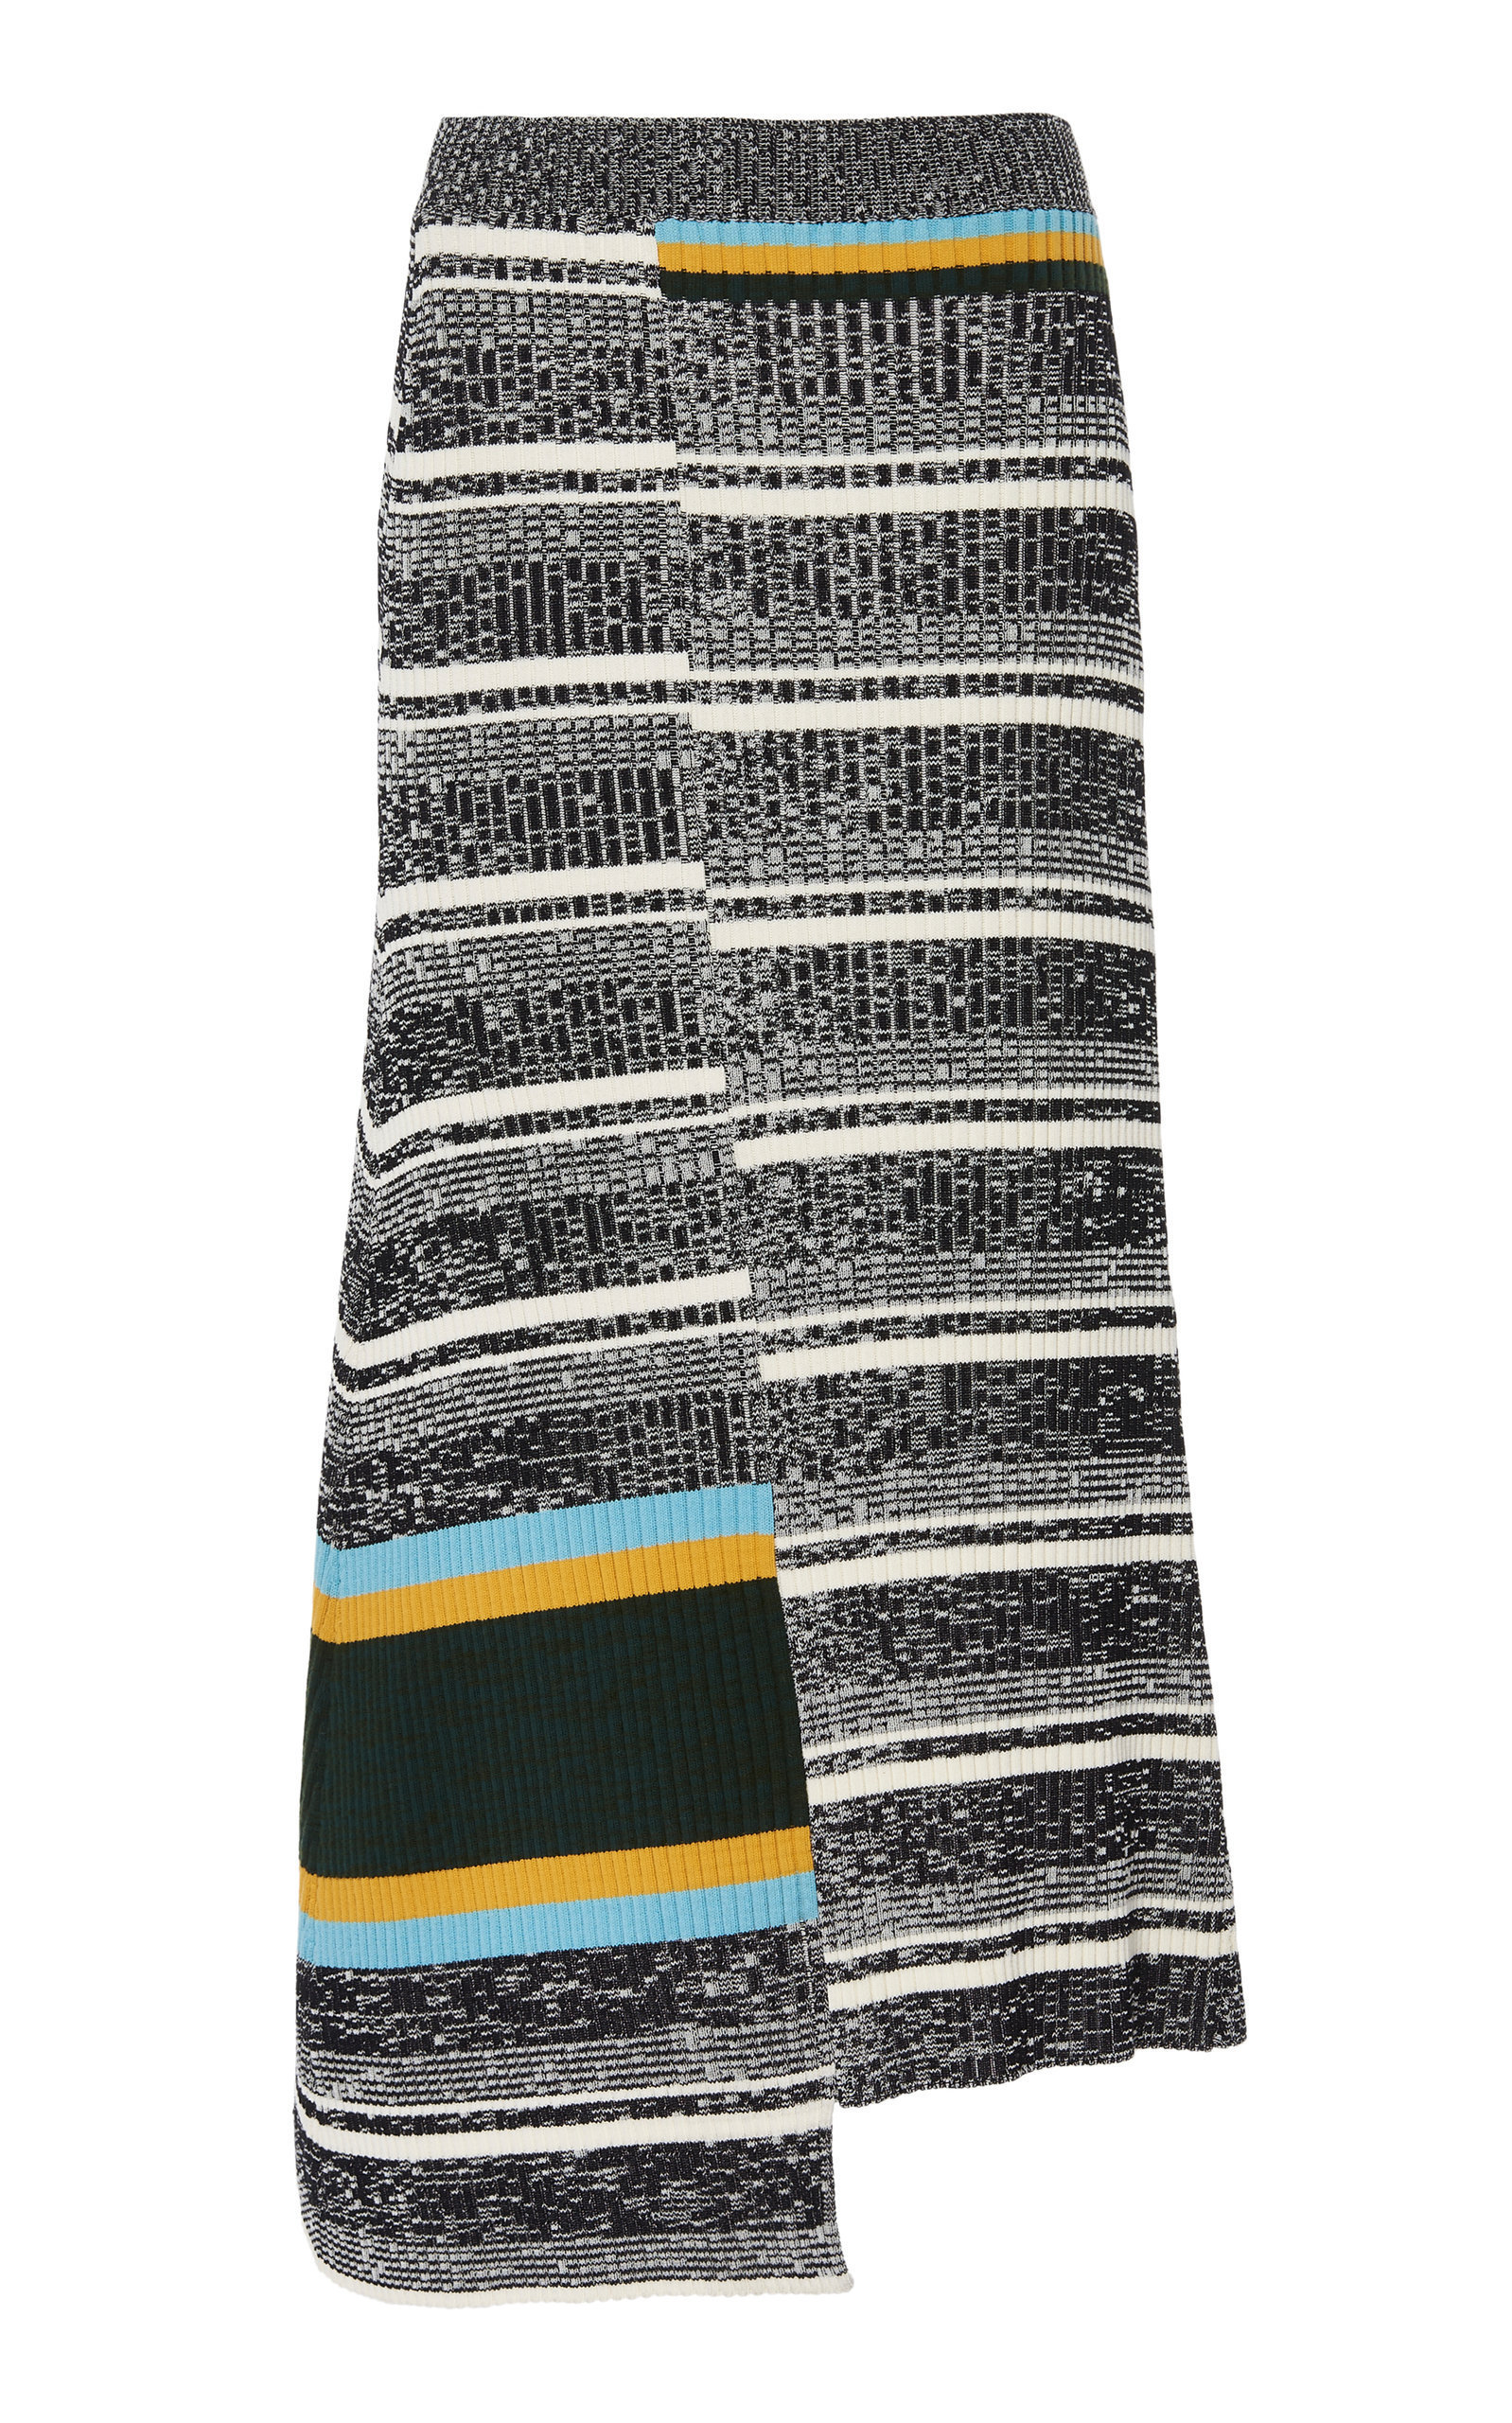 Asymmetric Striped Cotton Rib Knit Skirt